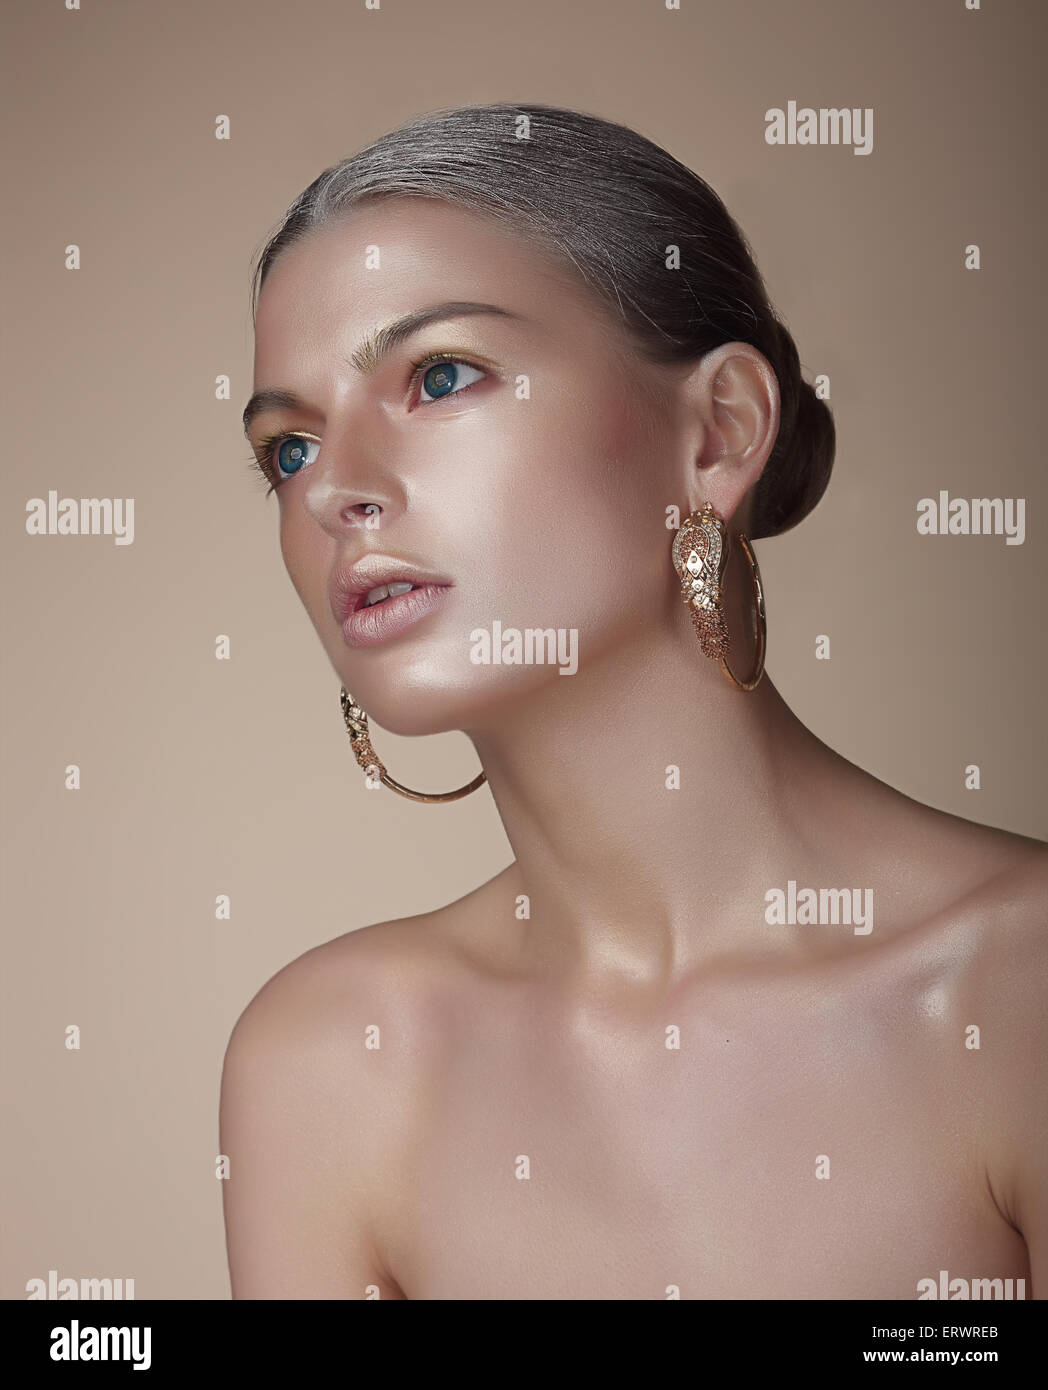 photo with portrait stock of earrings alamy erwreb woman gorgeous